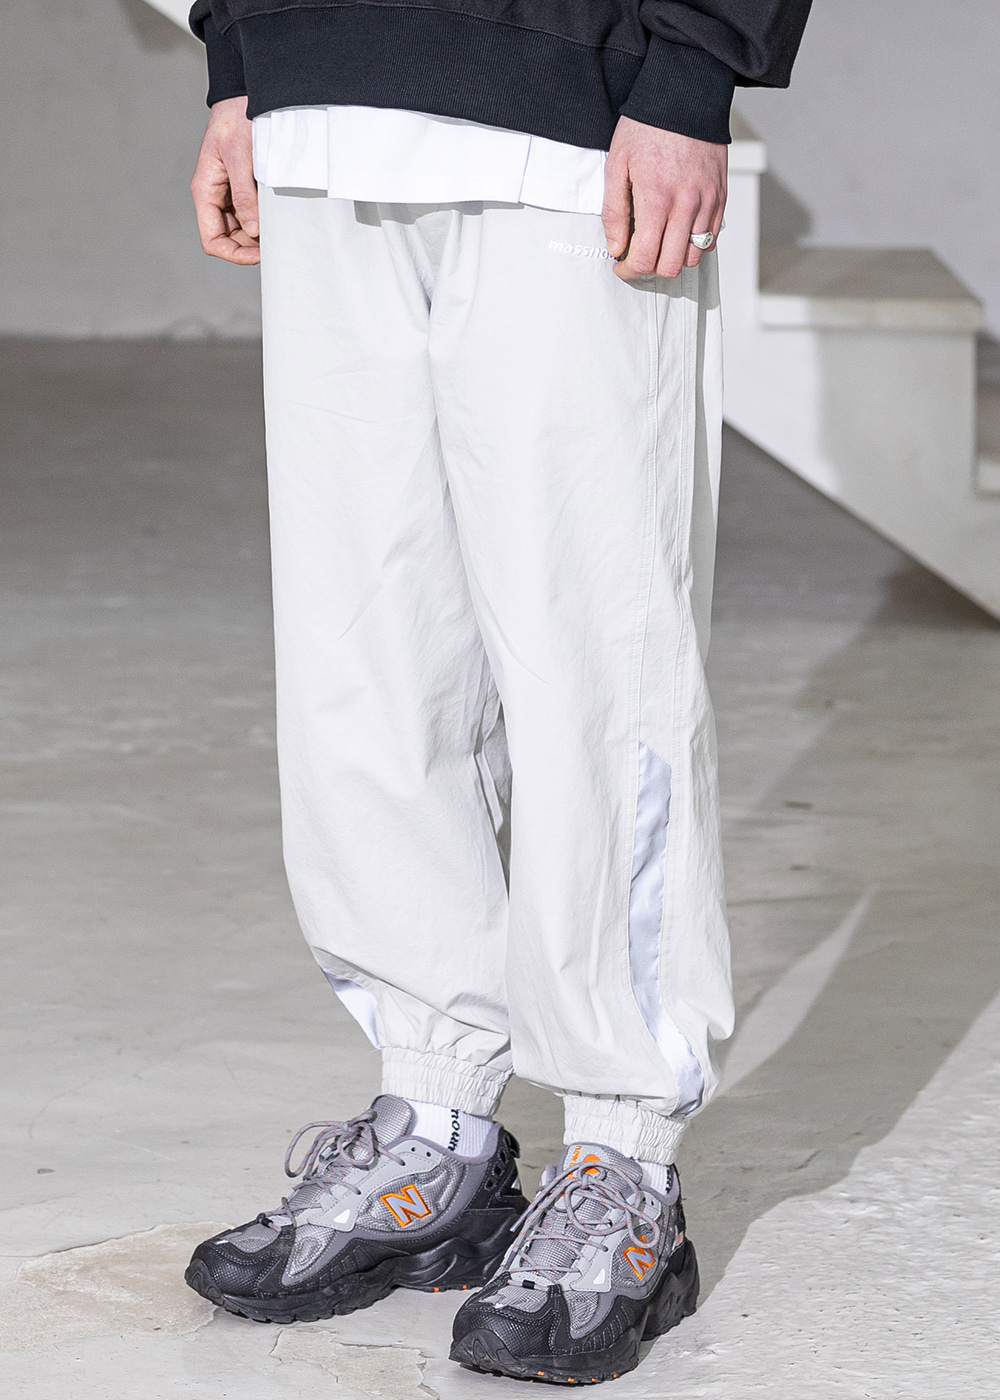 SL LOGO SECTION 3M LINE JOGGER PANT MSZCP001-GY